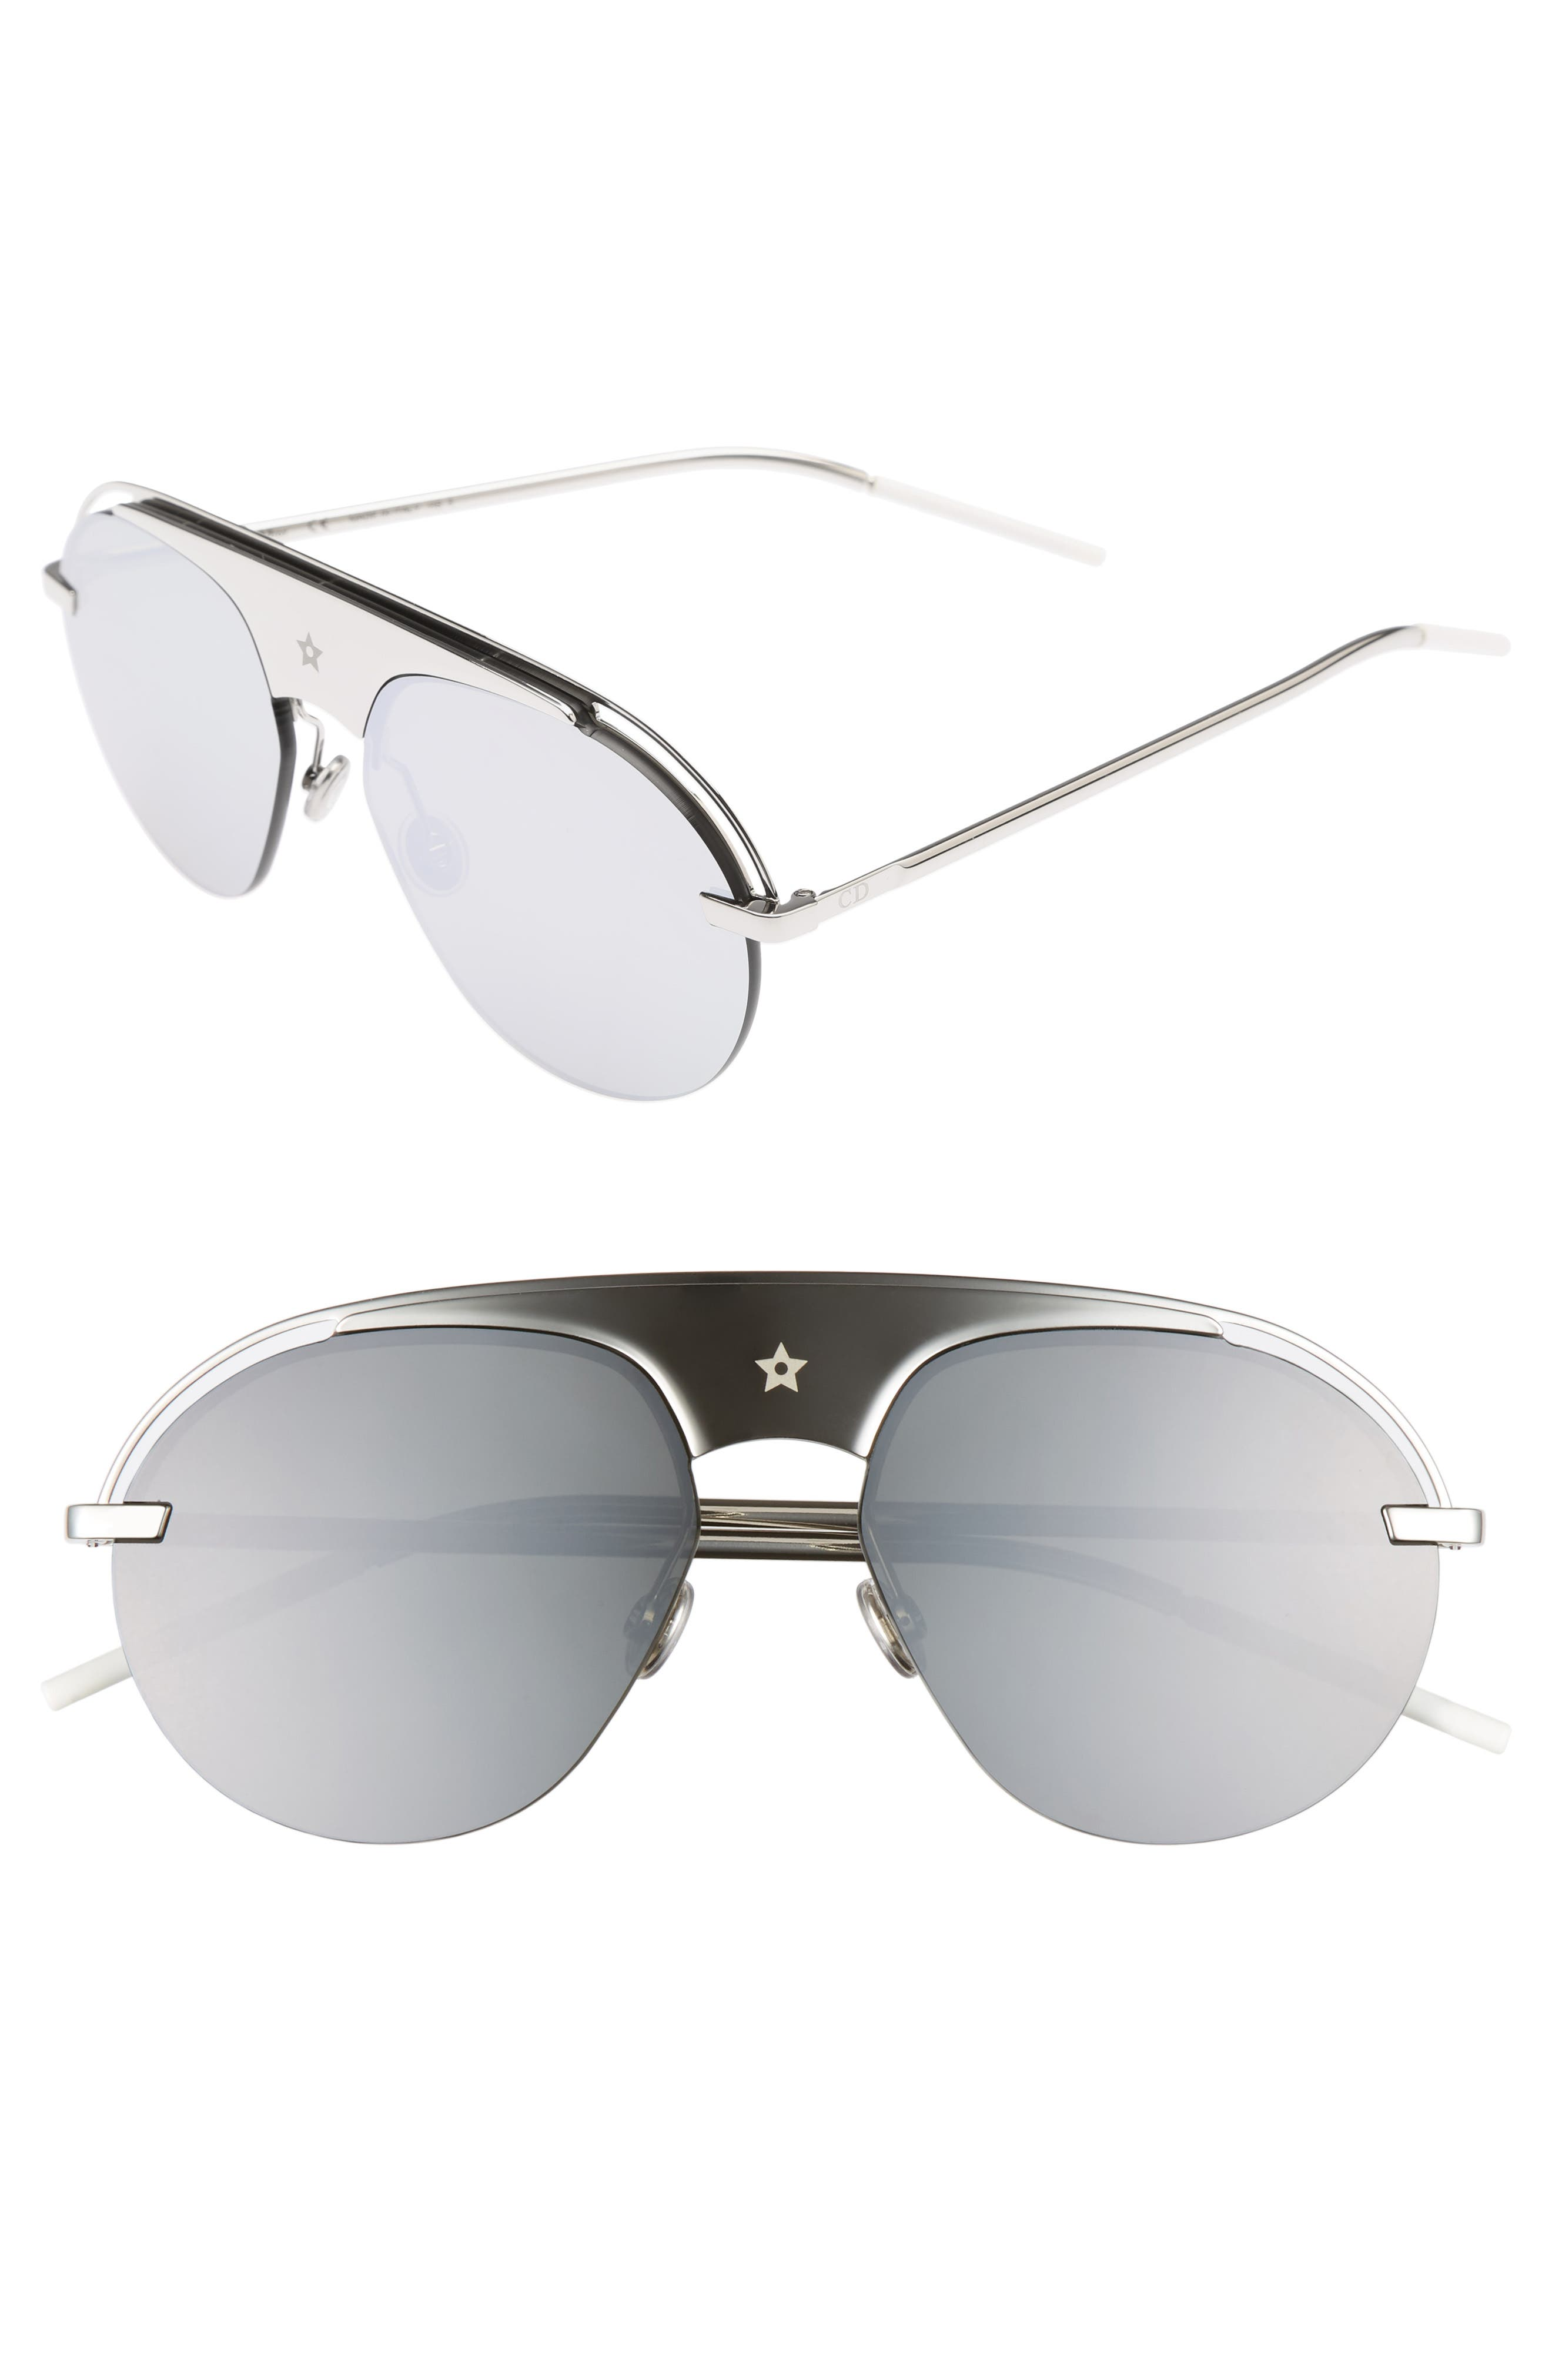 Evolution 2 60mm Aviator Sunglasses,                             Main thumbnail 1, color,                             Palladium